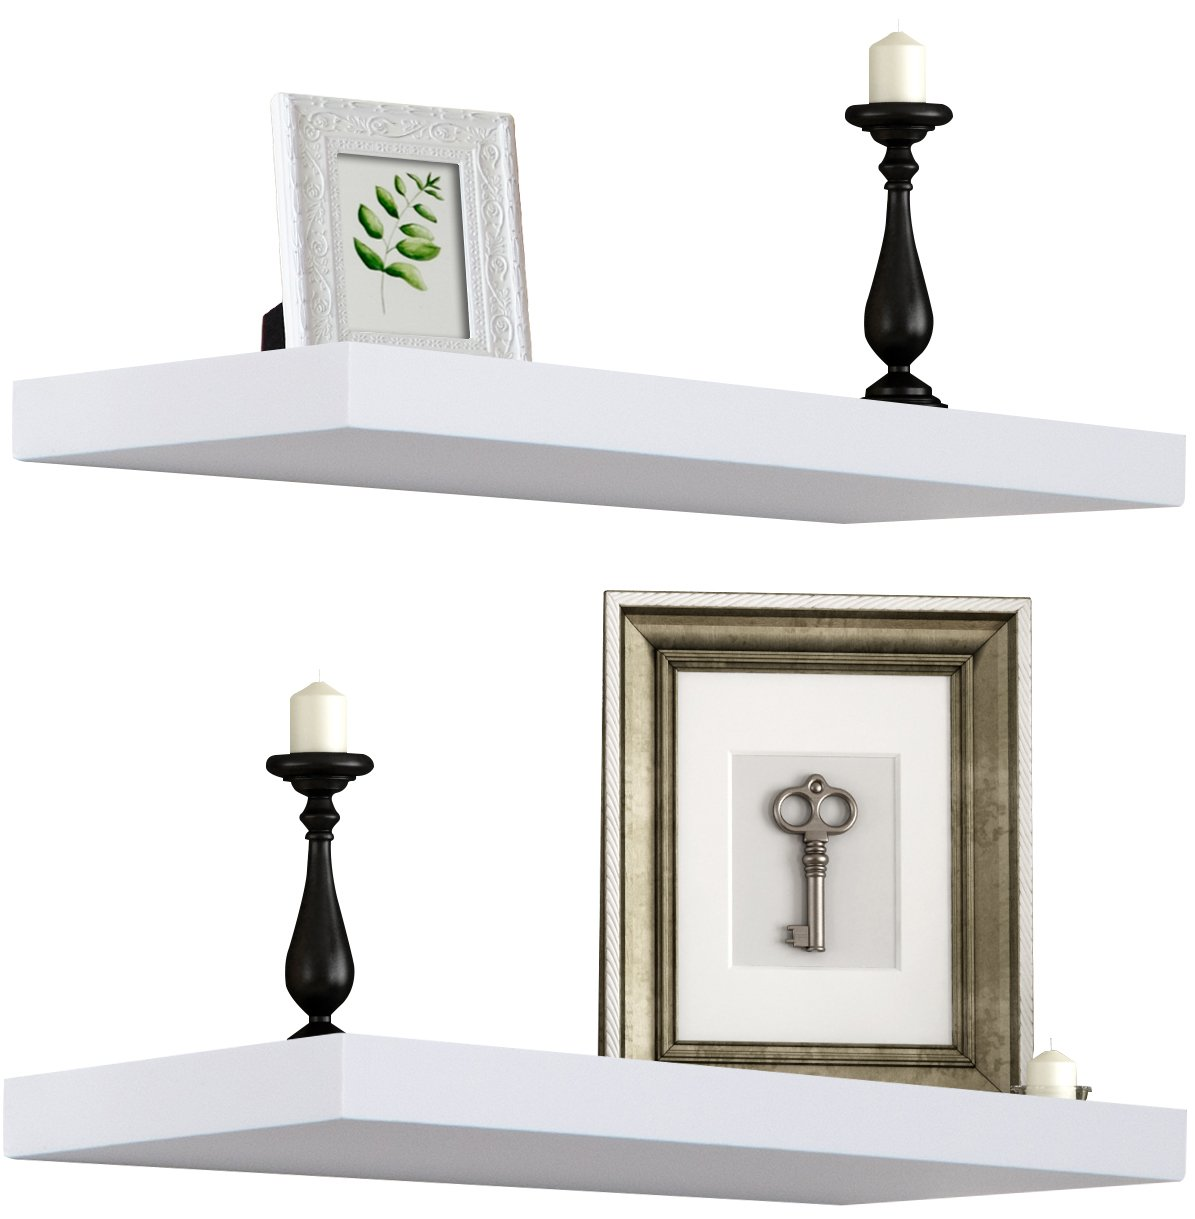 Sorbus Floating Shelf - Hanging Wall Shelves Decoration - Perfect Trophy Display, Photo Frames (White) by Sorbus